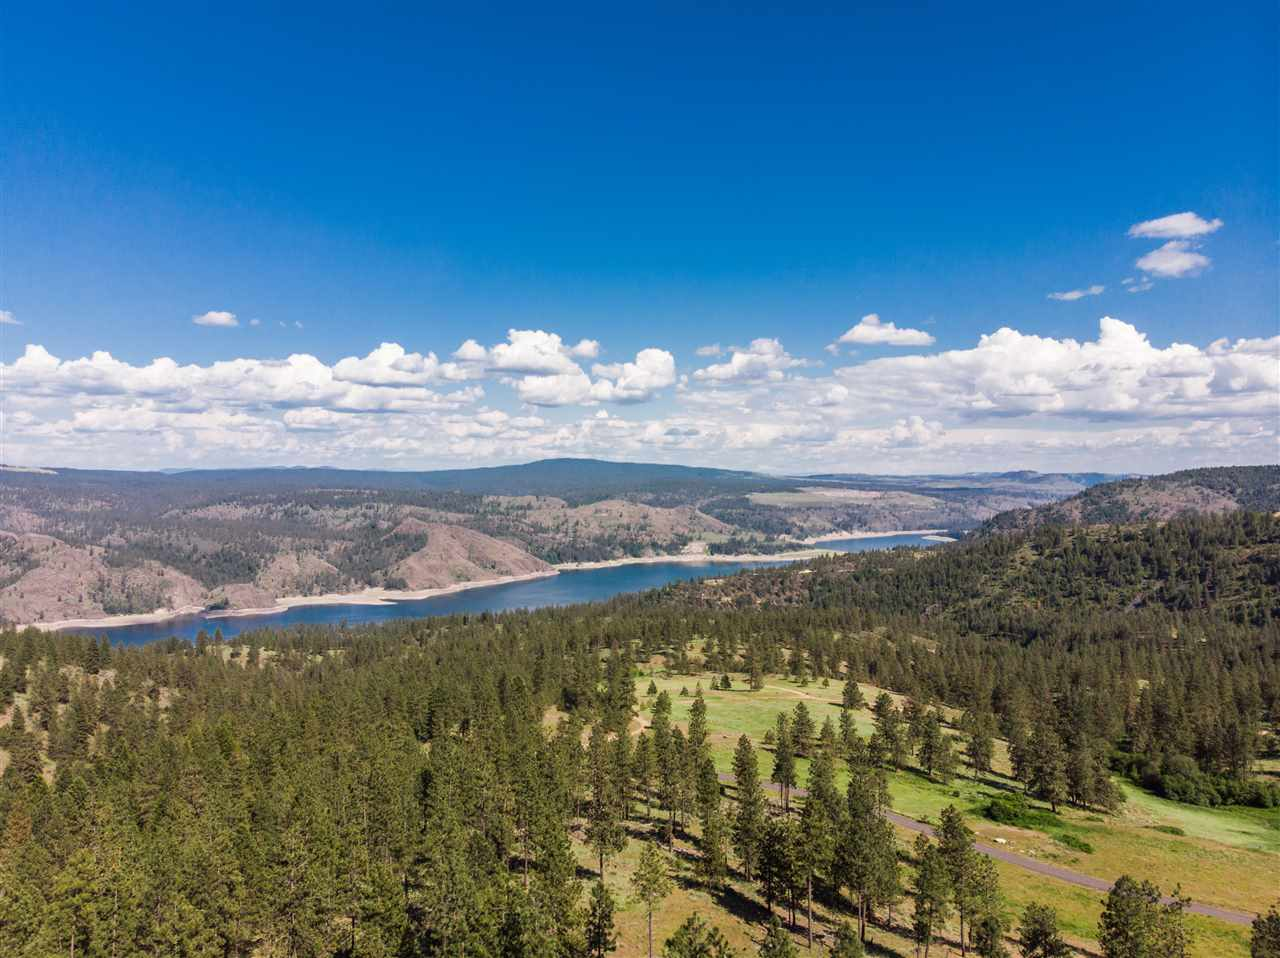 Photo of NHN N Bozeel Rd, Davenport, WA 99122